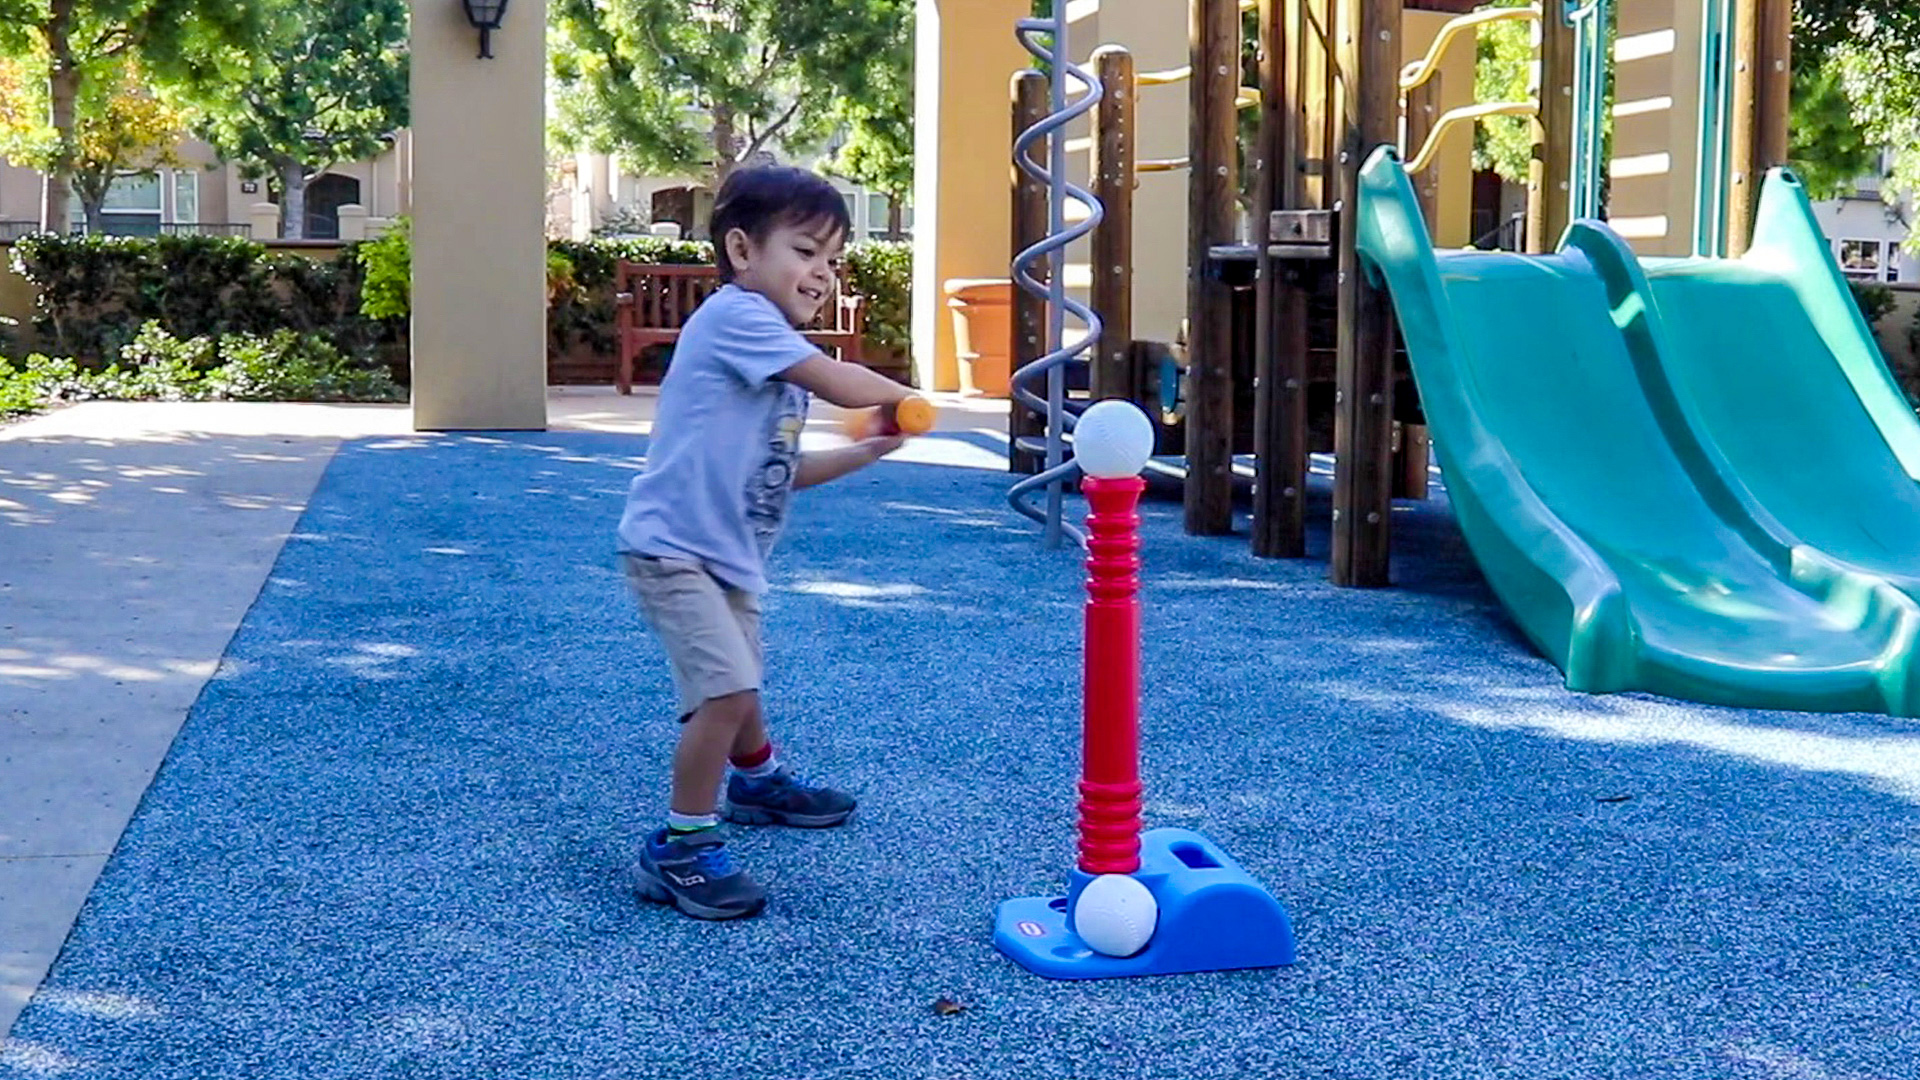 3 year old boy swinging a bat with the T-ball set